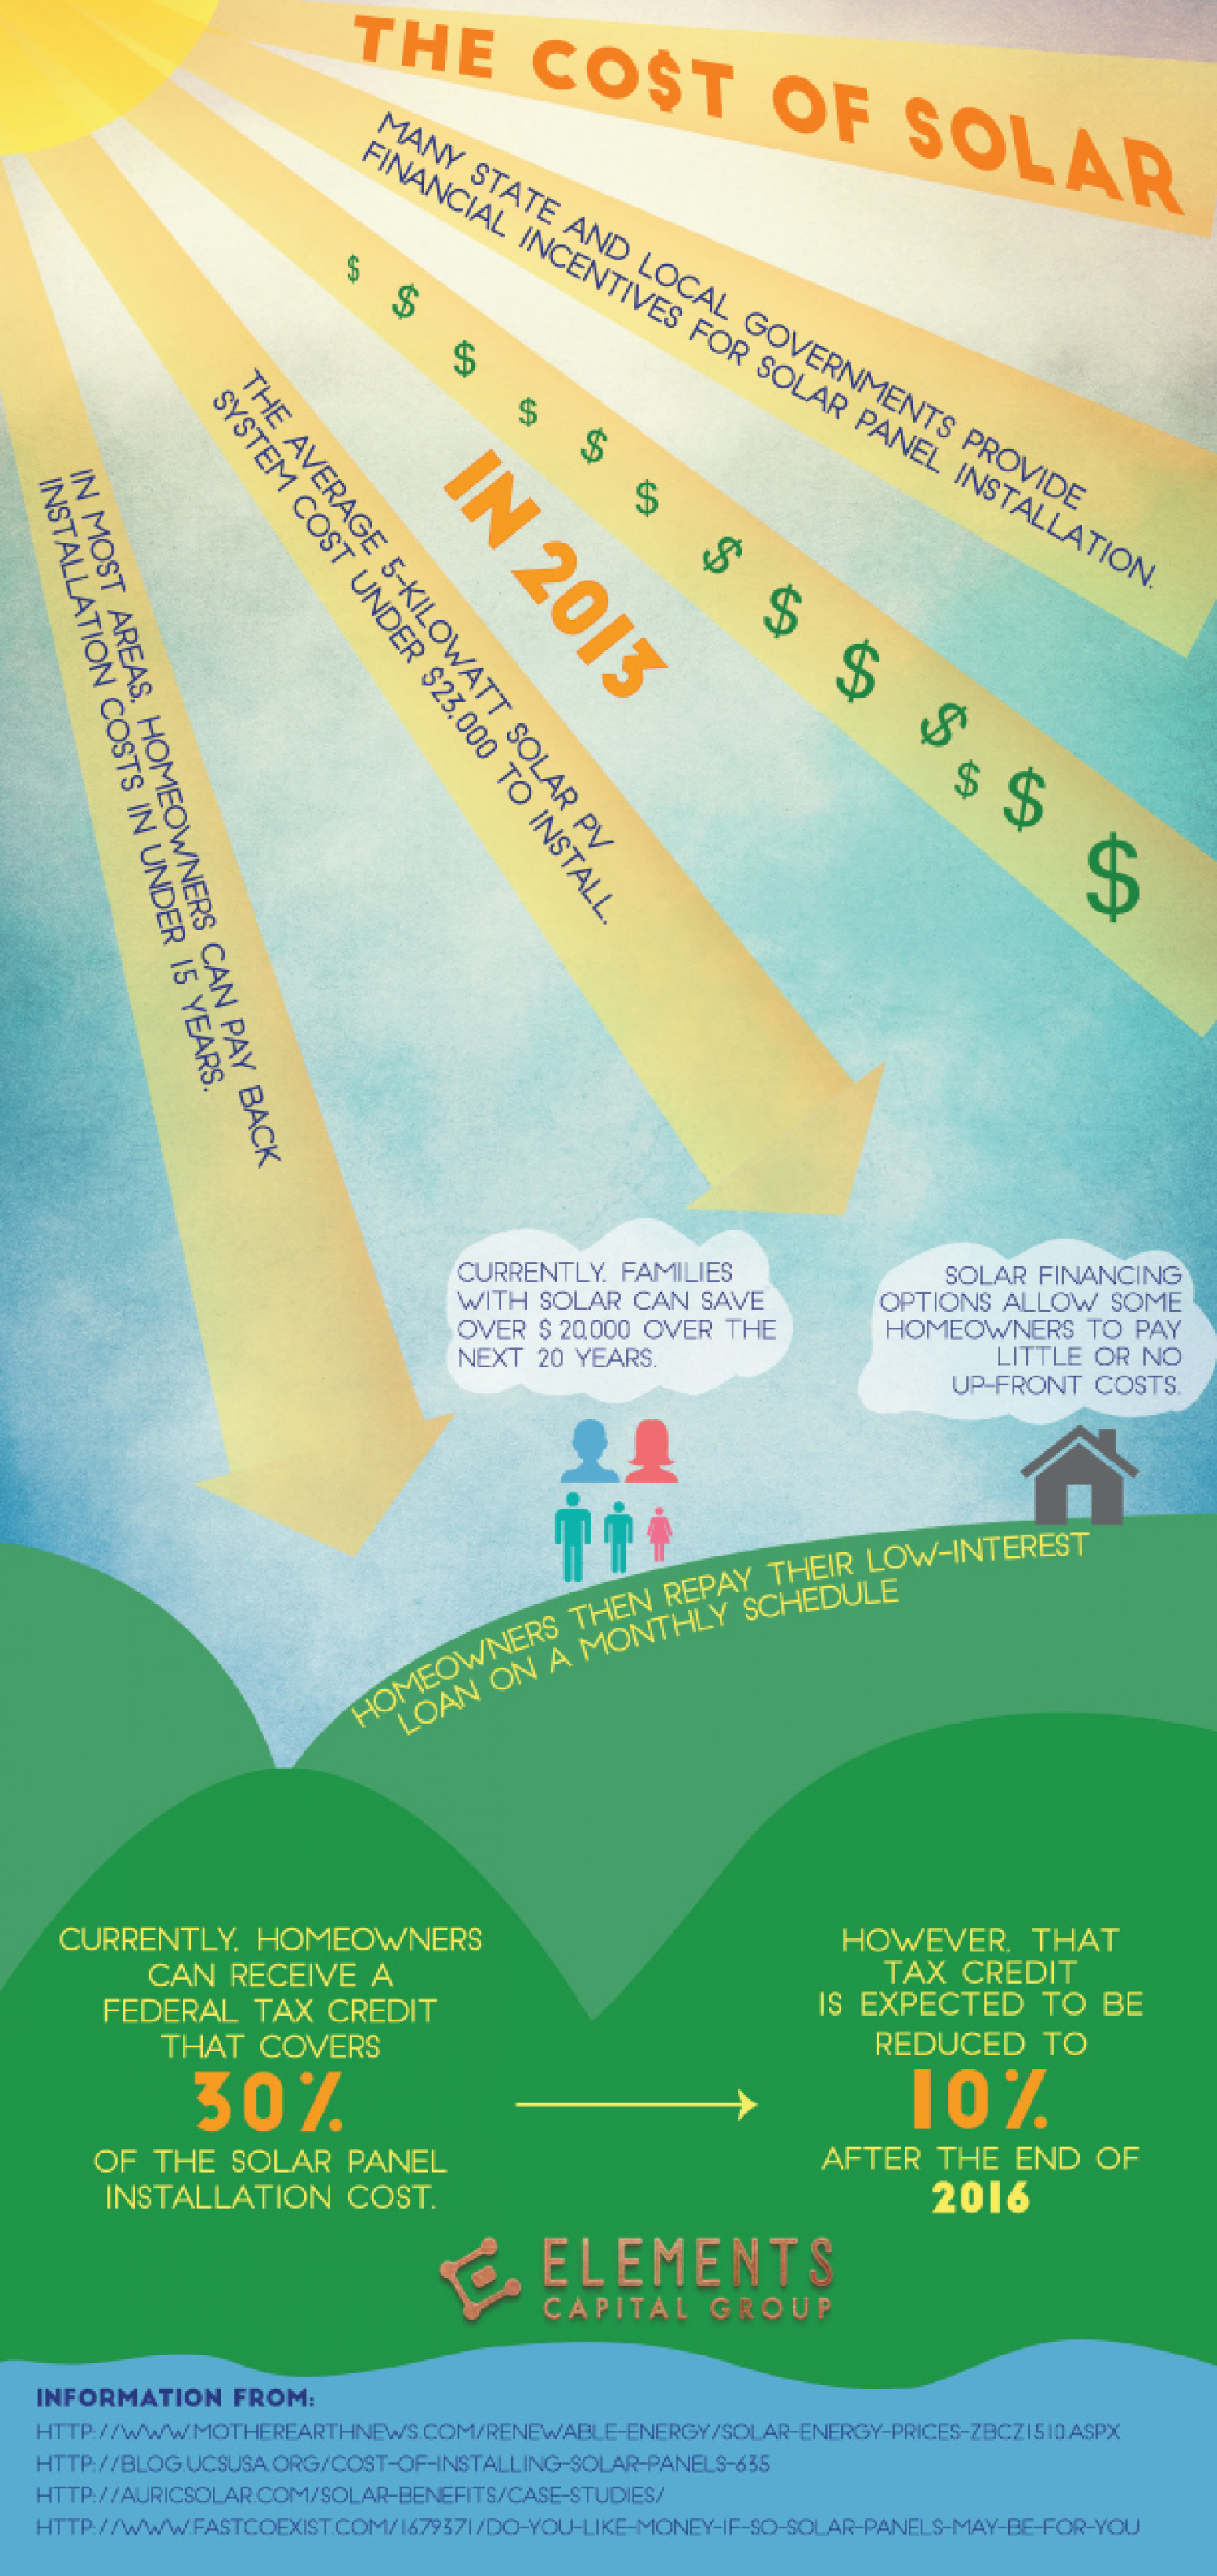 The Cost of Solar Infographic